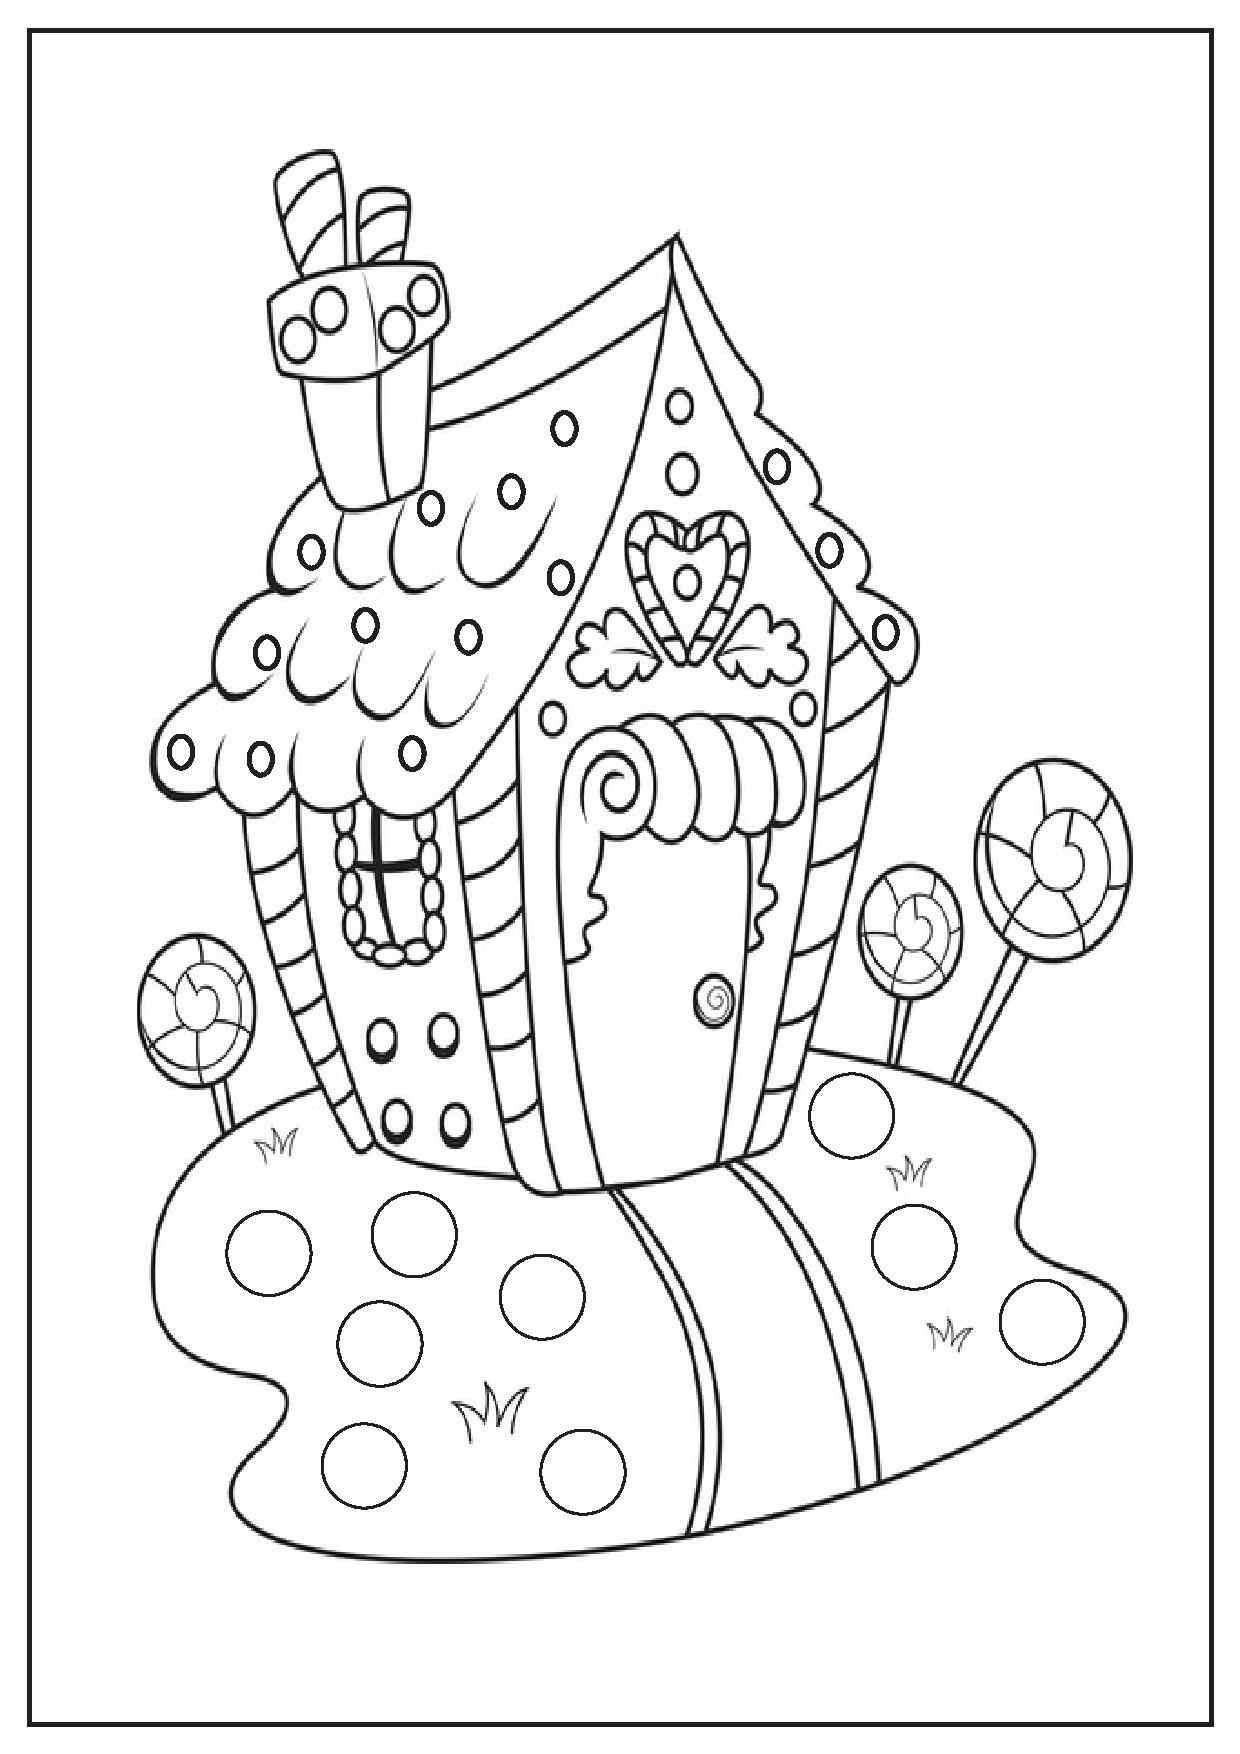 kindergarten coloring sheets only coloring pages - Color Books For Kindergarten